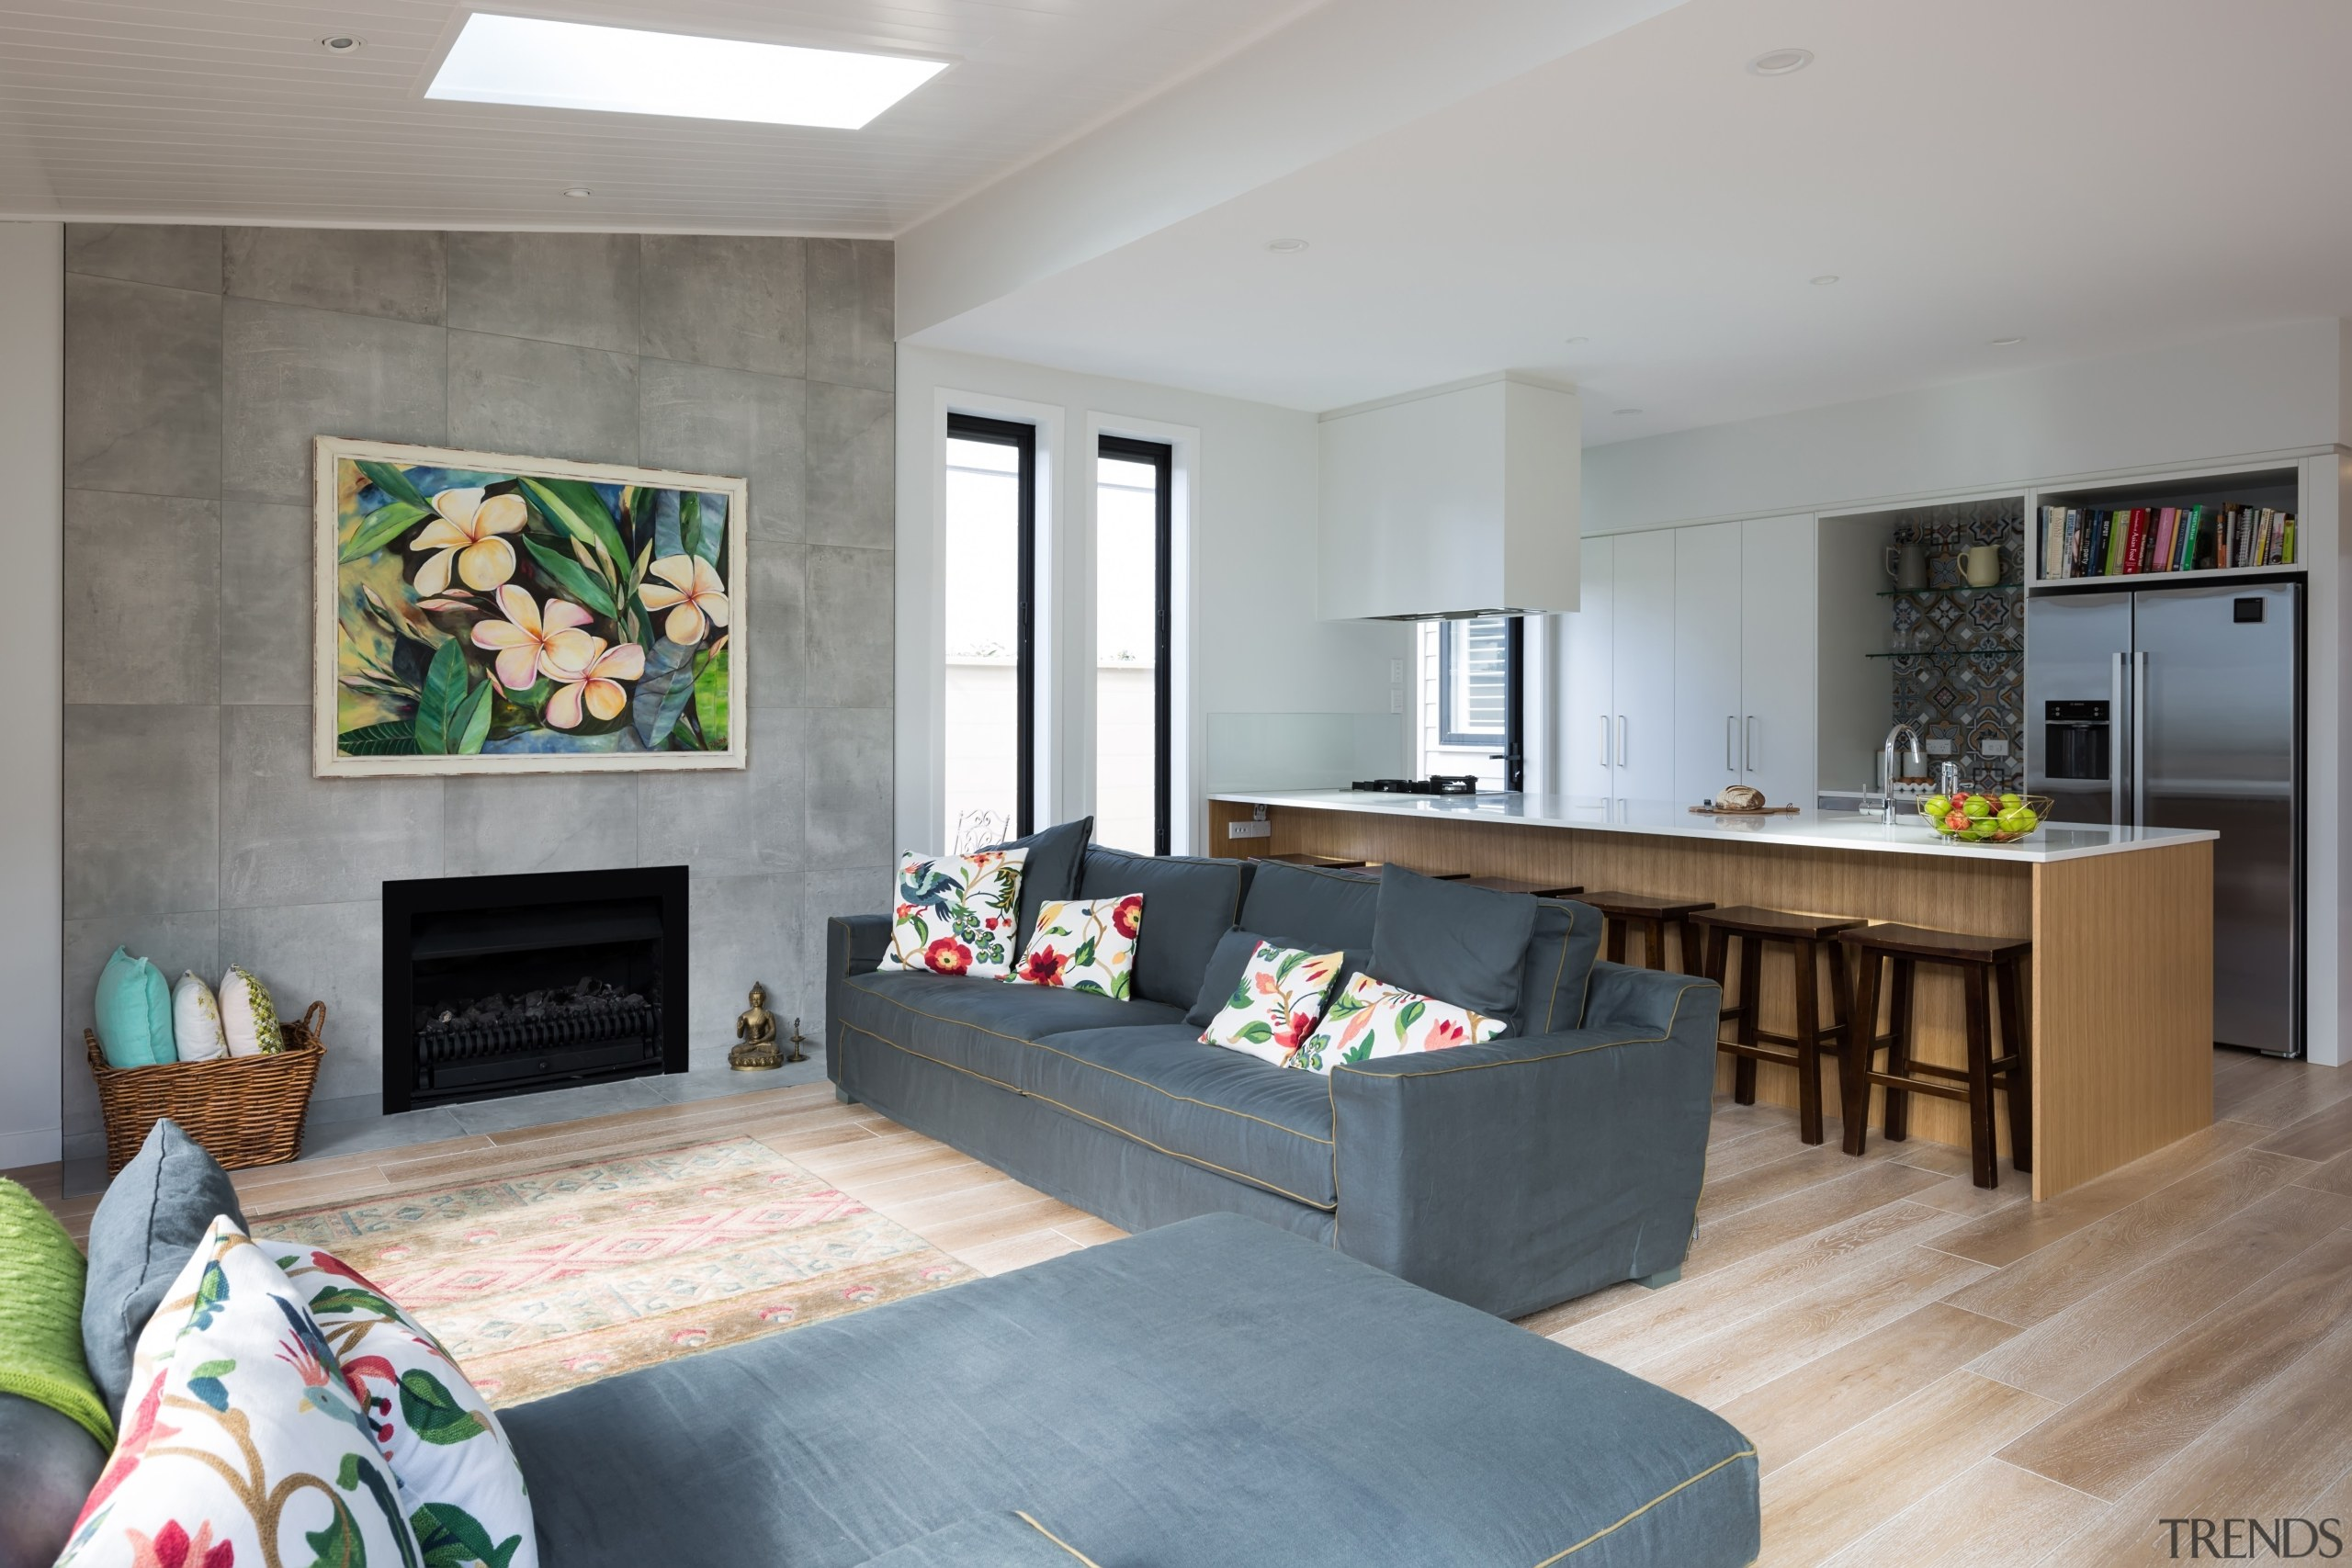 Armadale Road 2 - Armadale Road 2 - architecture, floor, house, interior design, living room, real estate, room, table, gray